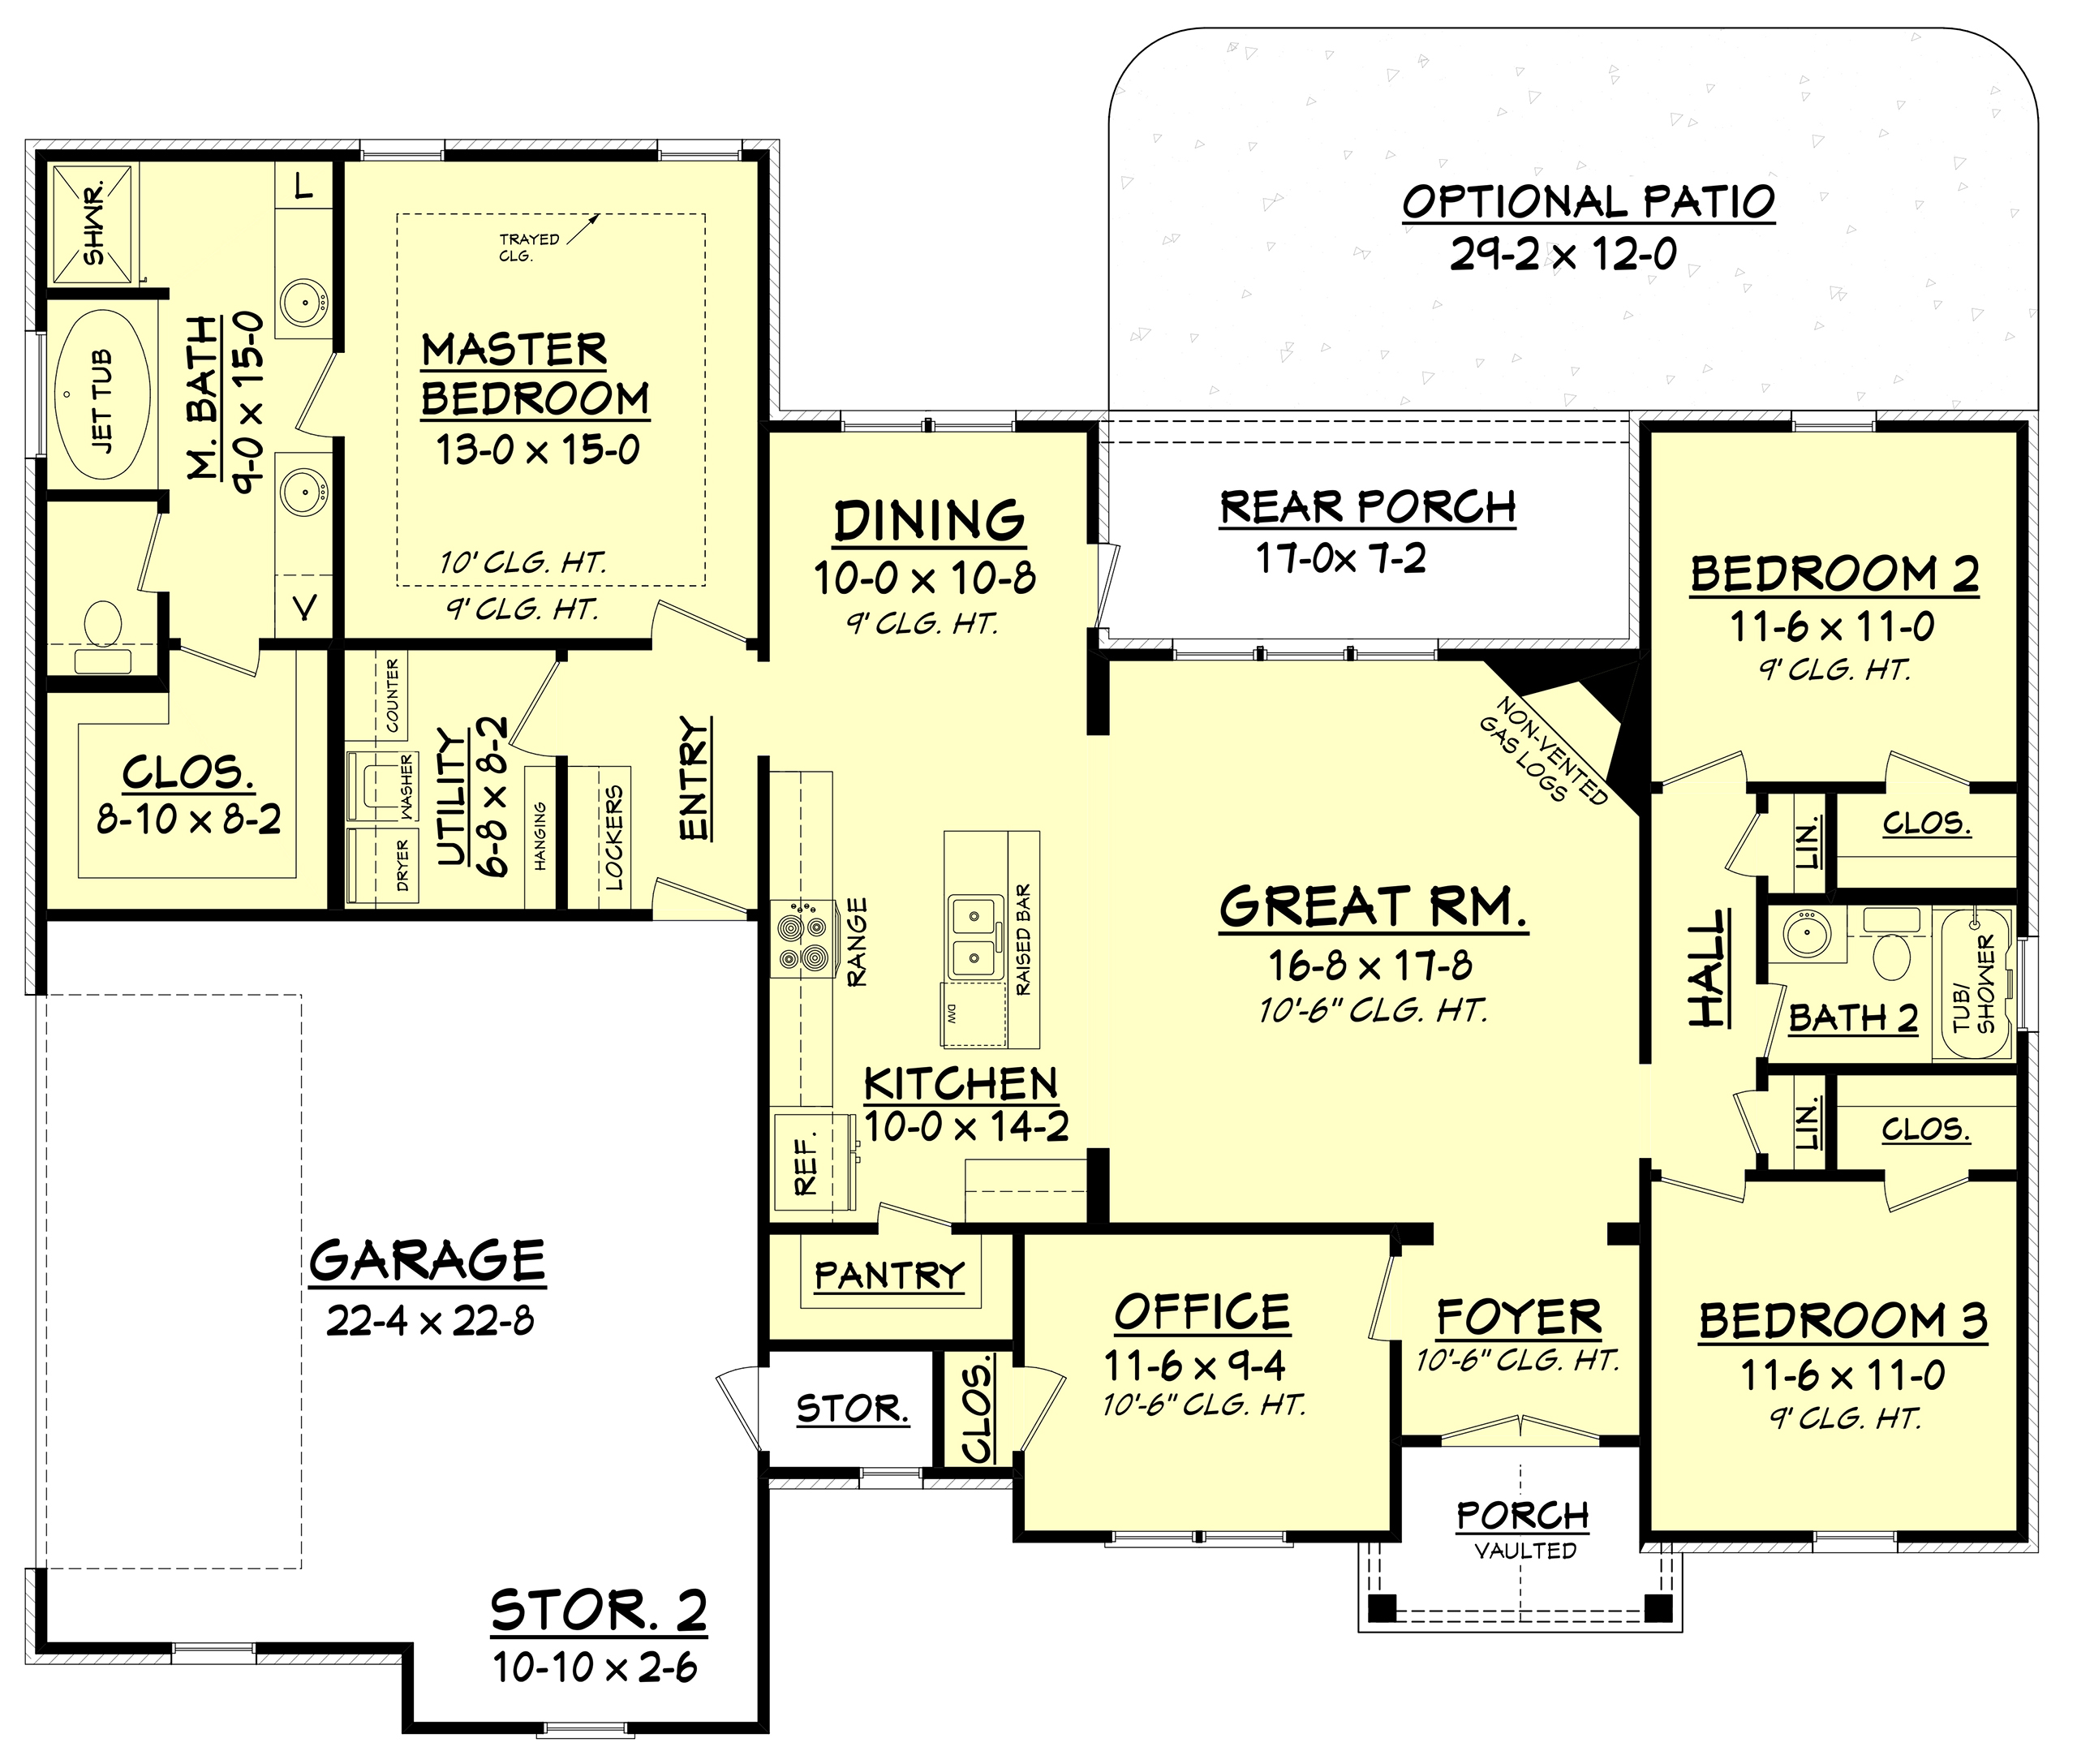 House Plan 1421075 3 Bdrm 1769 Sq Ft Traditional Home  ThePlanCollection